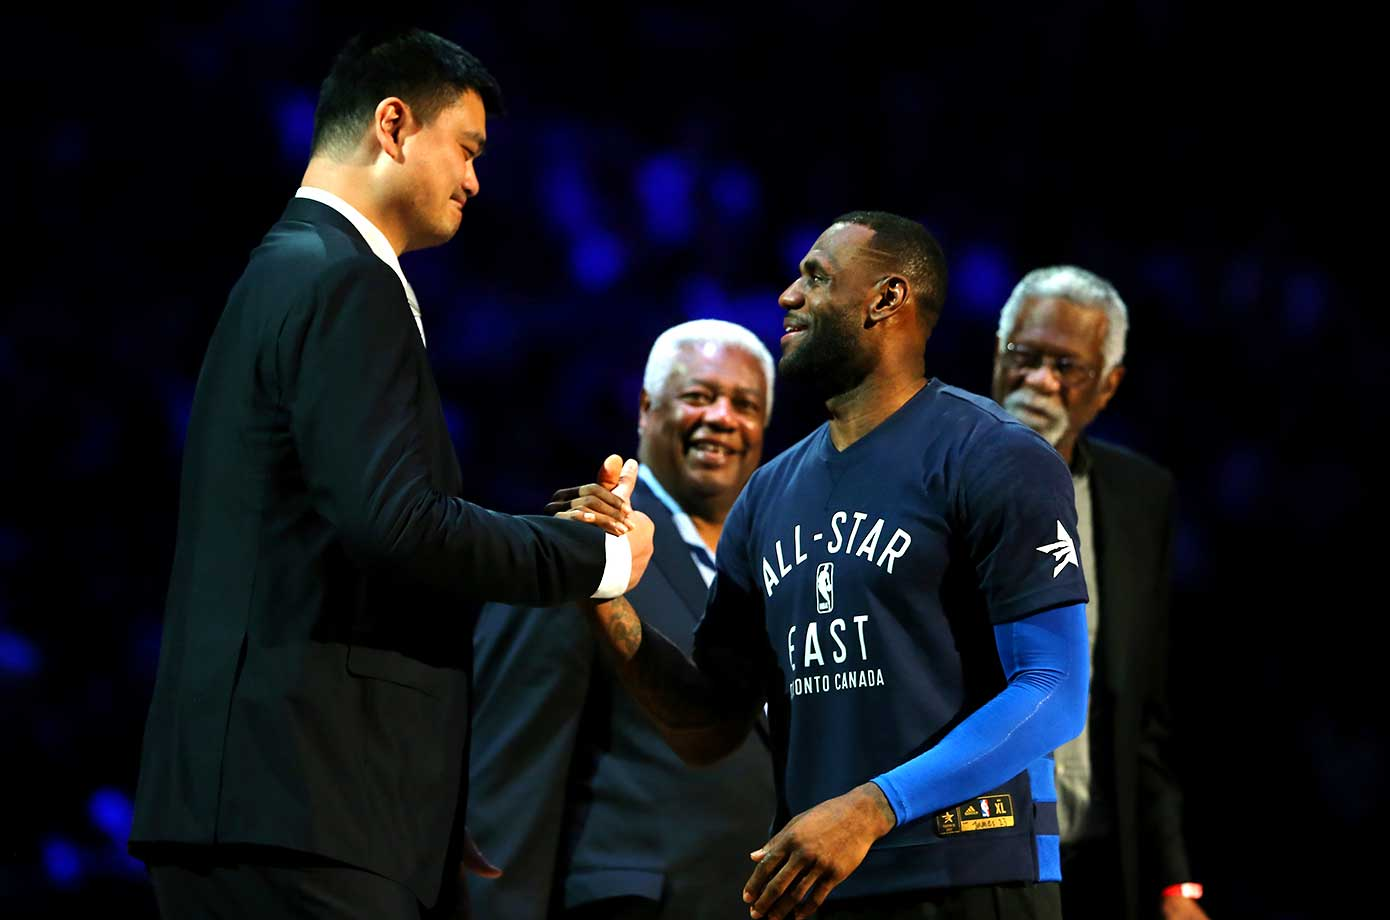 LeBron James speaks to former NBA players Yao Ming, Oscar Robertson and Bill Russell as they are honored at the NBA All-Star Game.